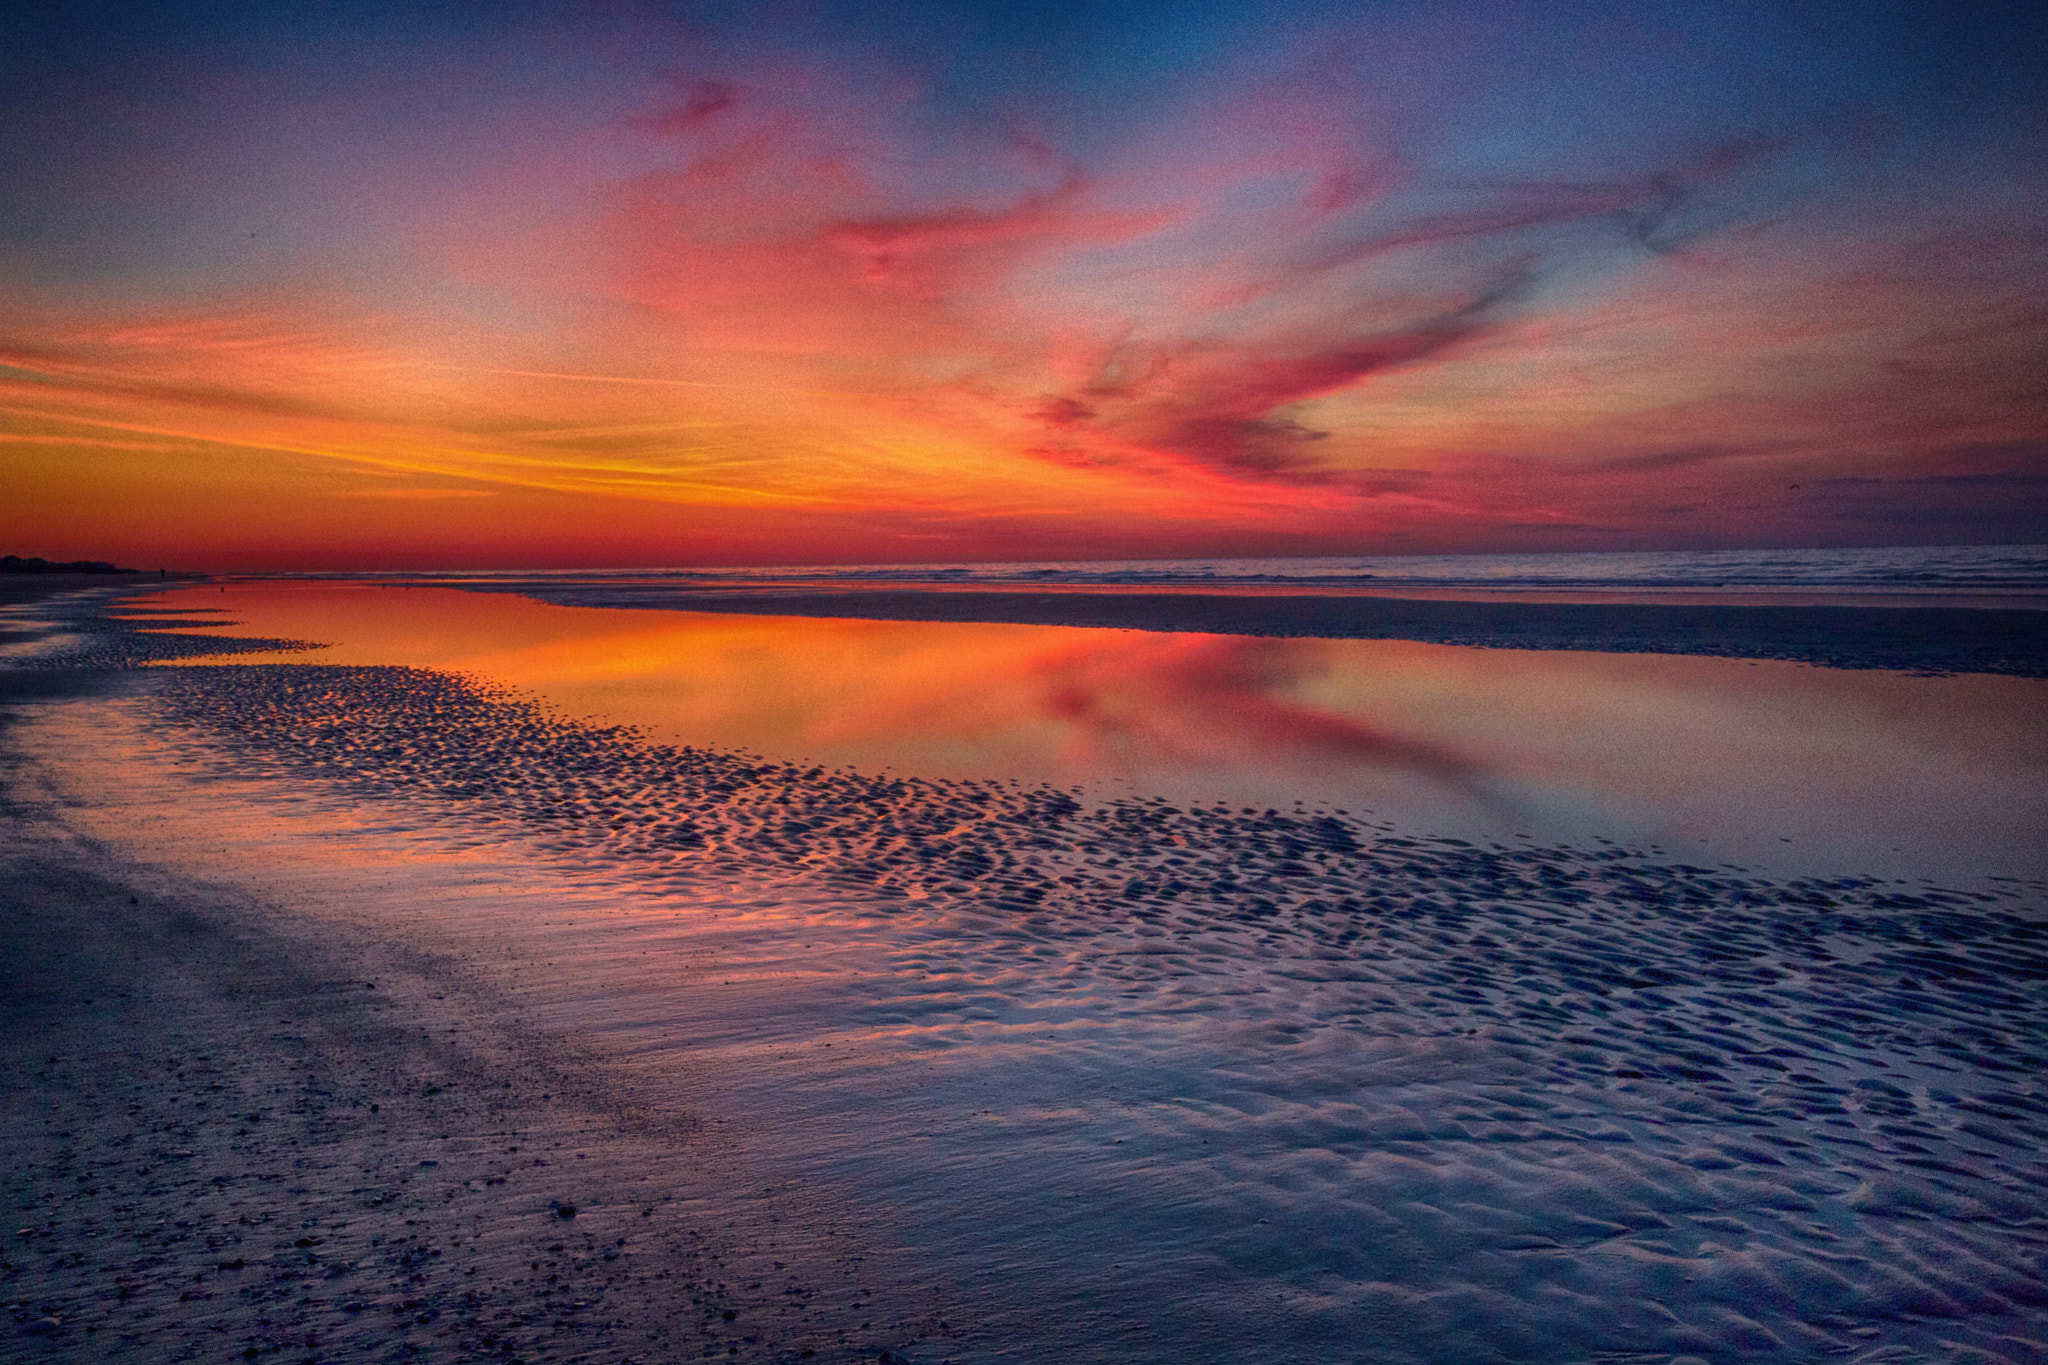 Photograph Sunset Reflection by Diane Le Fevre on 500px